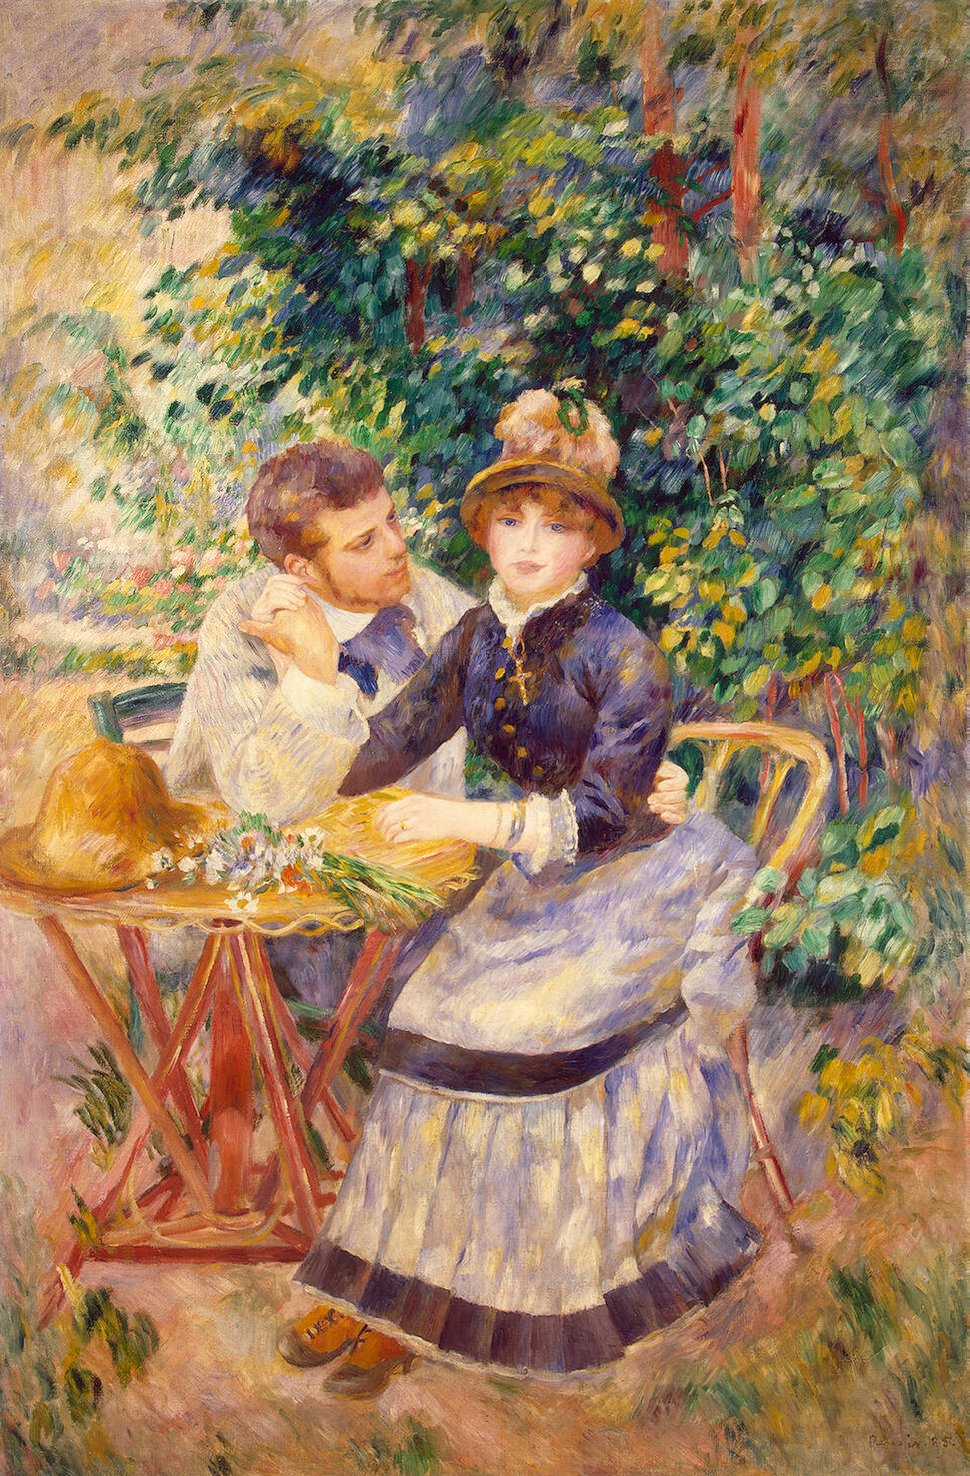 In the Garden by Pierre Auguste Renoir, 1885.